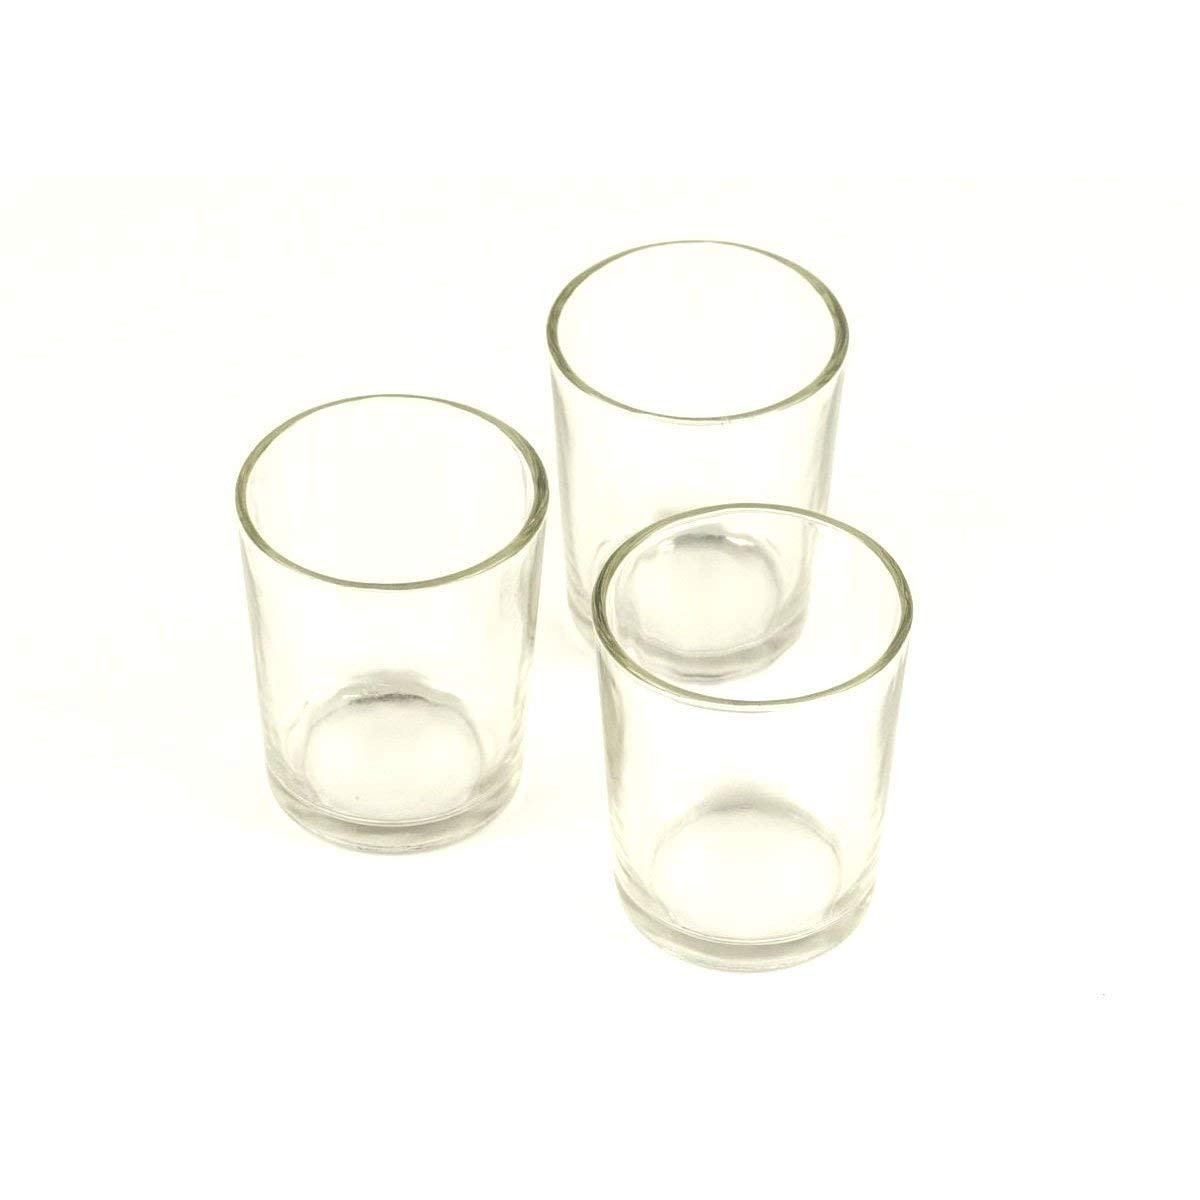 36 inch cylinder vase of amazon com clear glass votive holders 2 5 pack of 12 home kitchen pertaining to 51peo9vaadl sl1200